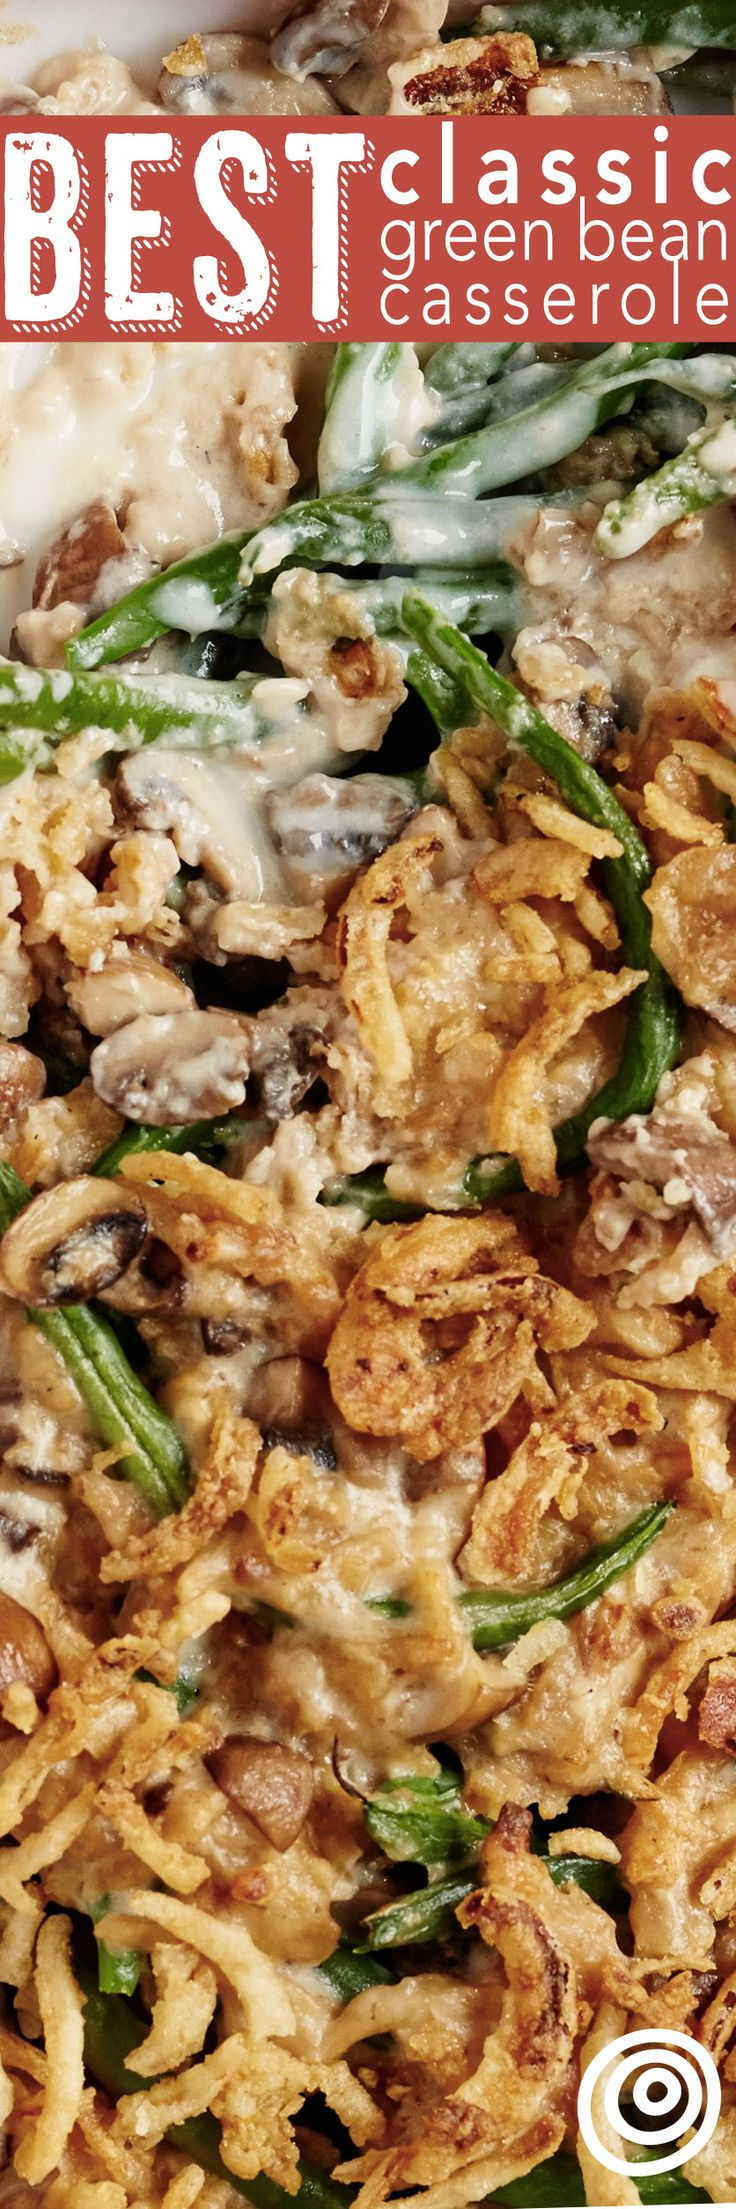 How To Make THE BEST Classic Green Bean Casserole Recipe from scratch. NO cans here, which makes it slightly more healthy. Perfect for Thanksgiving or Christmas, and easy to make too! We like to use frozen green beans, lots of fresh mushrooms, and other tasty whole ingredients that your family will absolutely love.